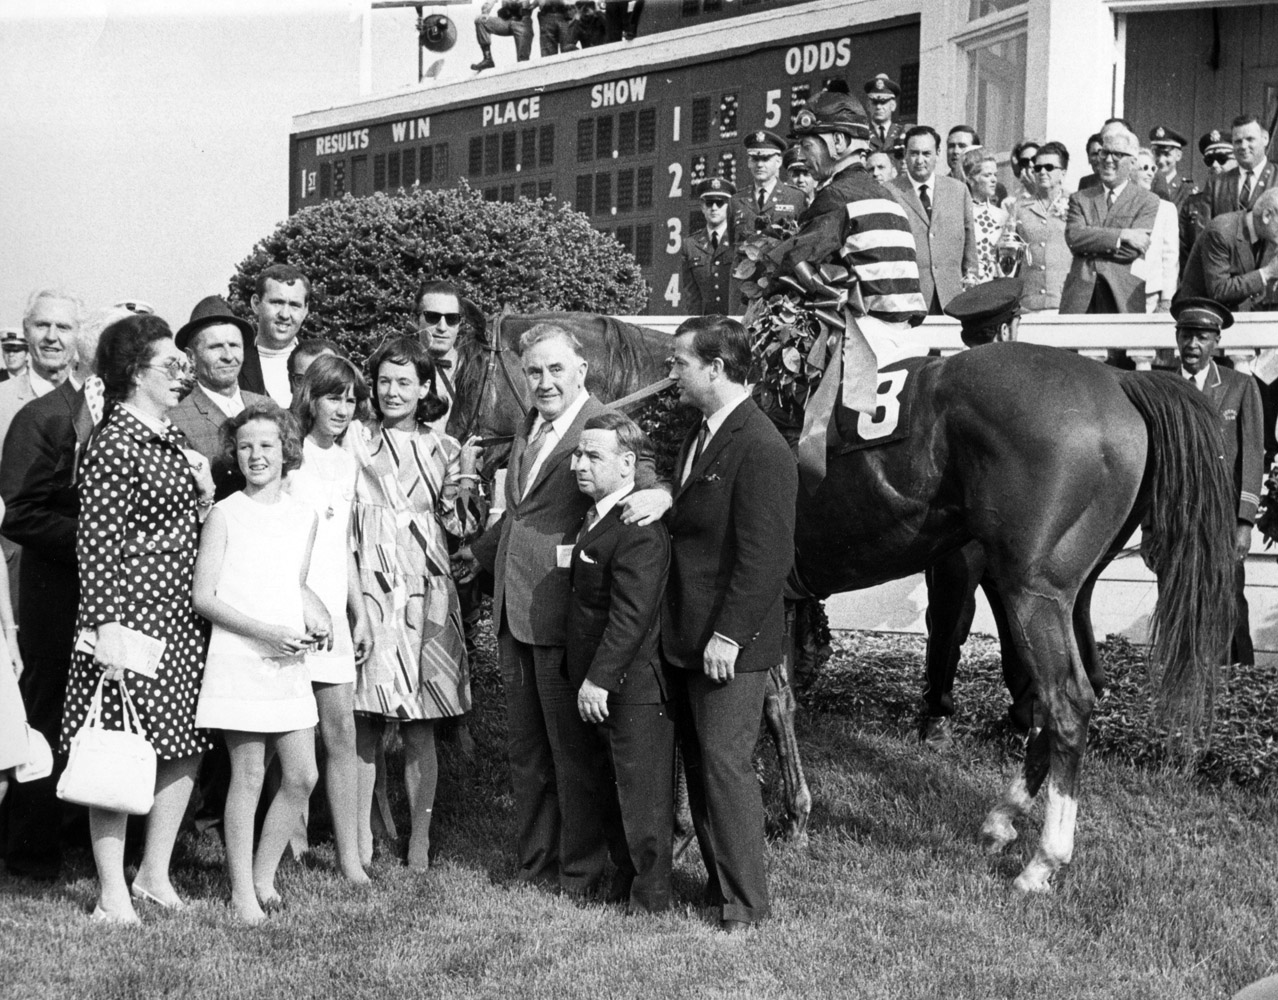 Majestic Prince and his connections (including his trainer, Hall of Fame jockey Johnny Longden) in the winner's circle for the 1969 Kentucky Derby (Museum Collection)